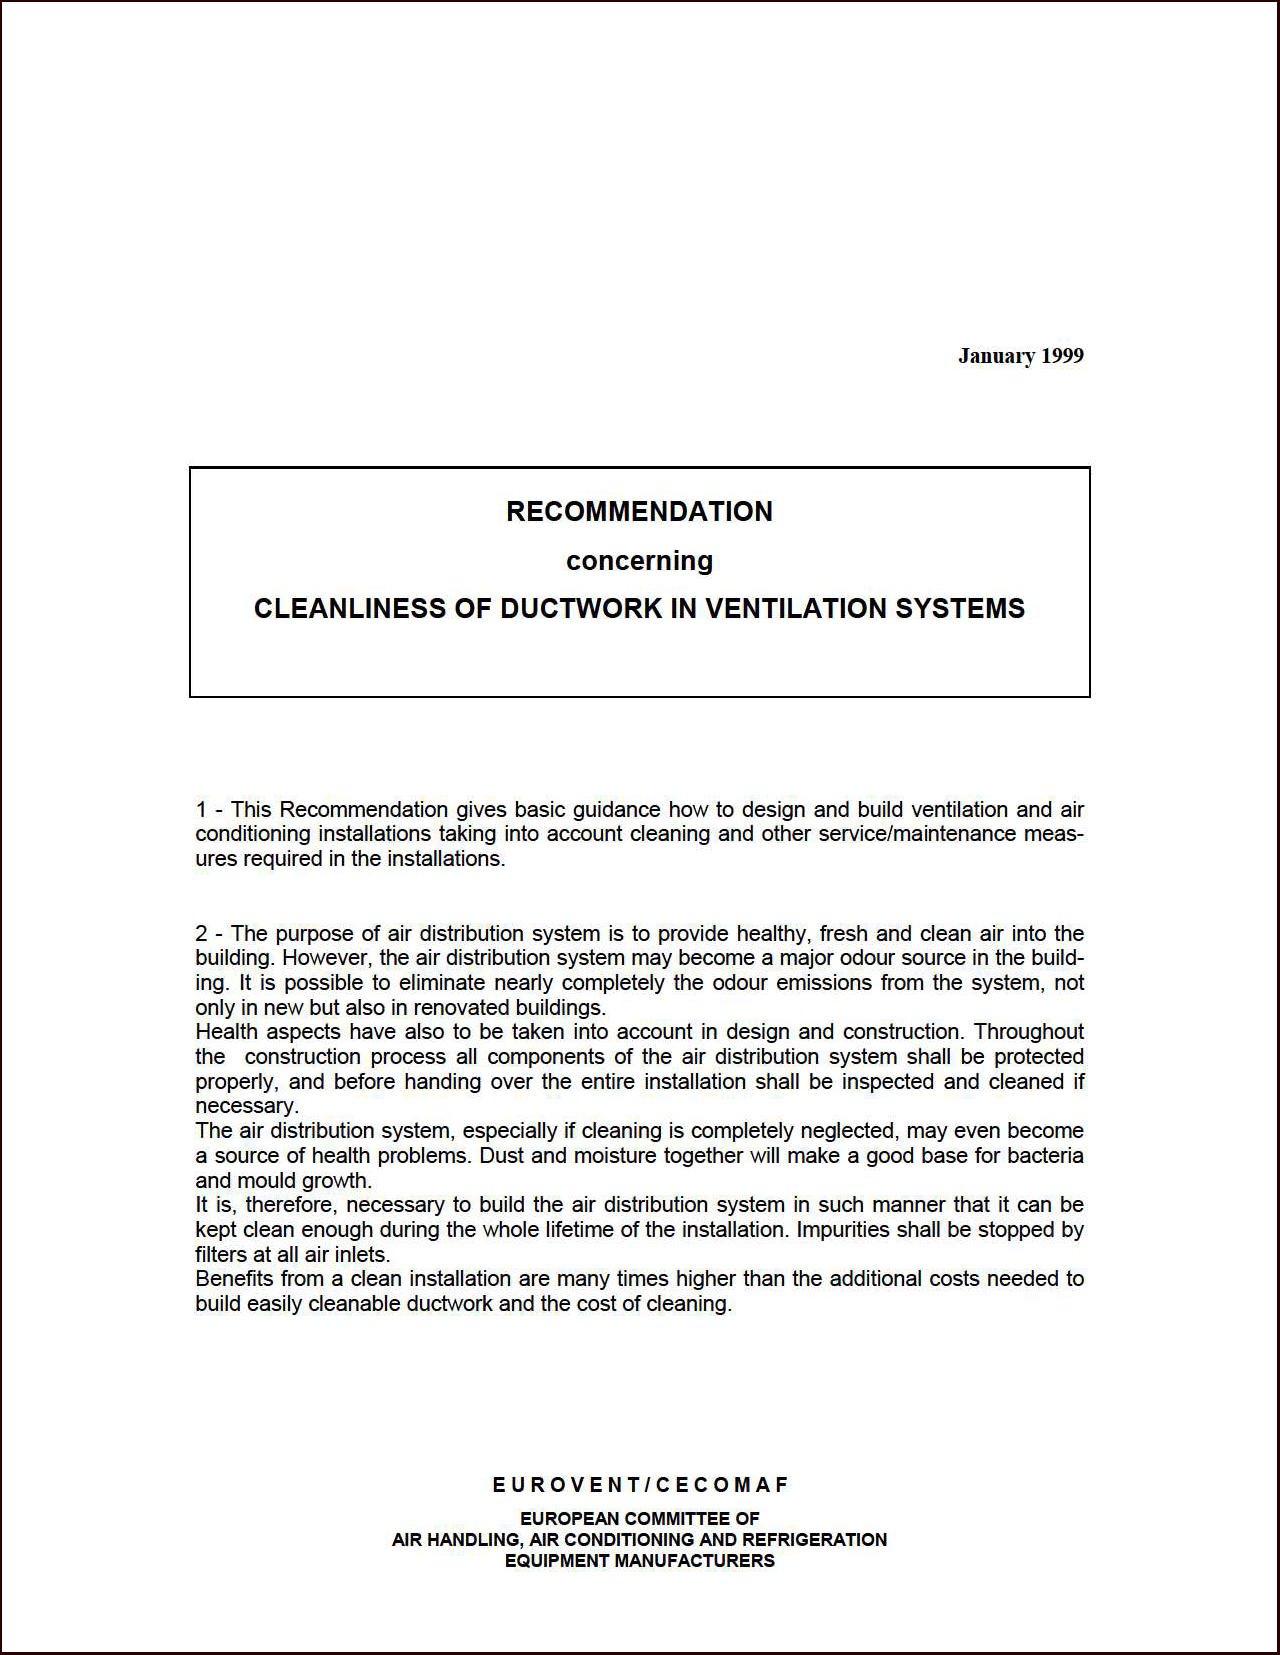 1999 - Cleanliness of ductwork in ventilation systems